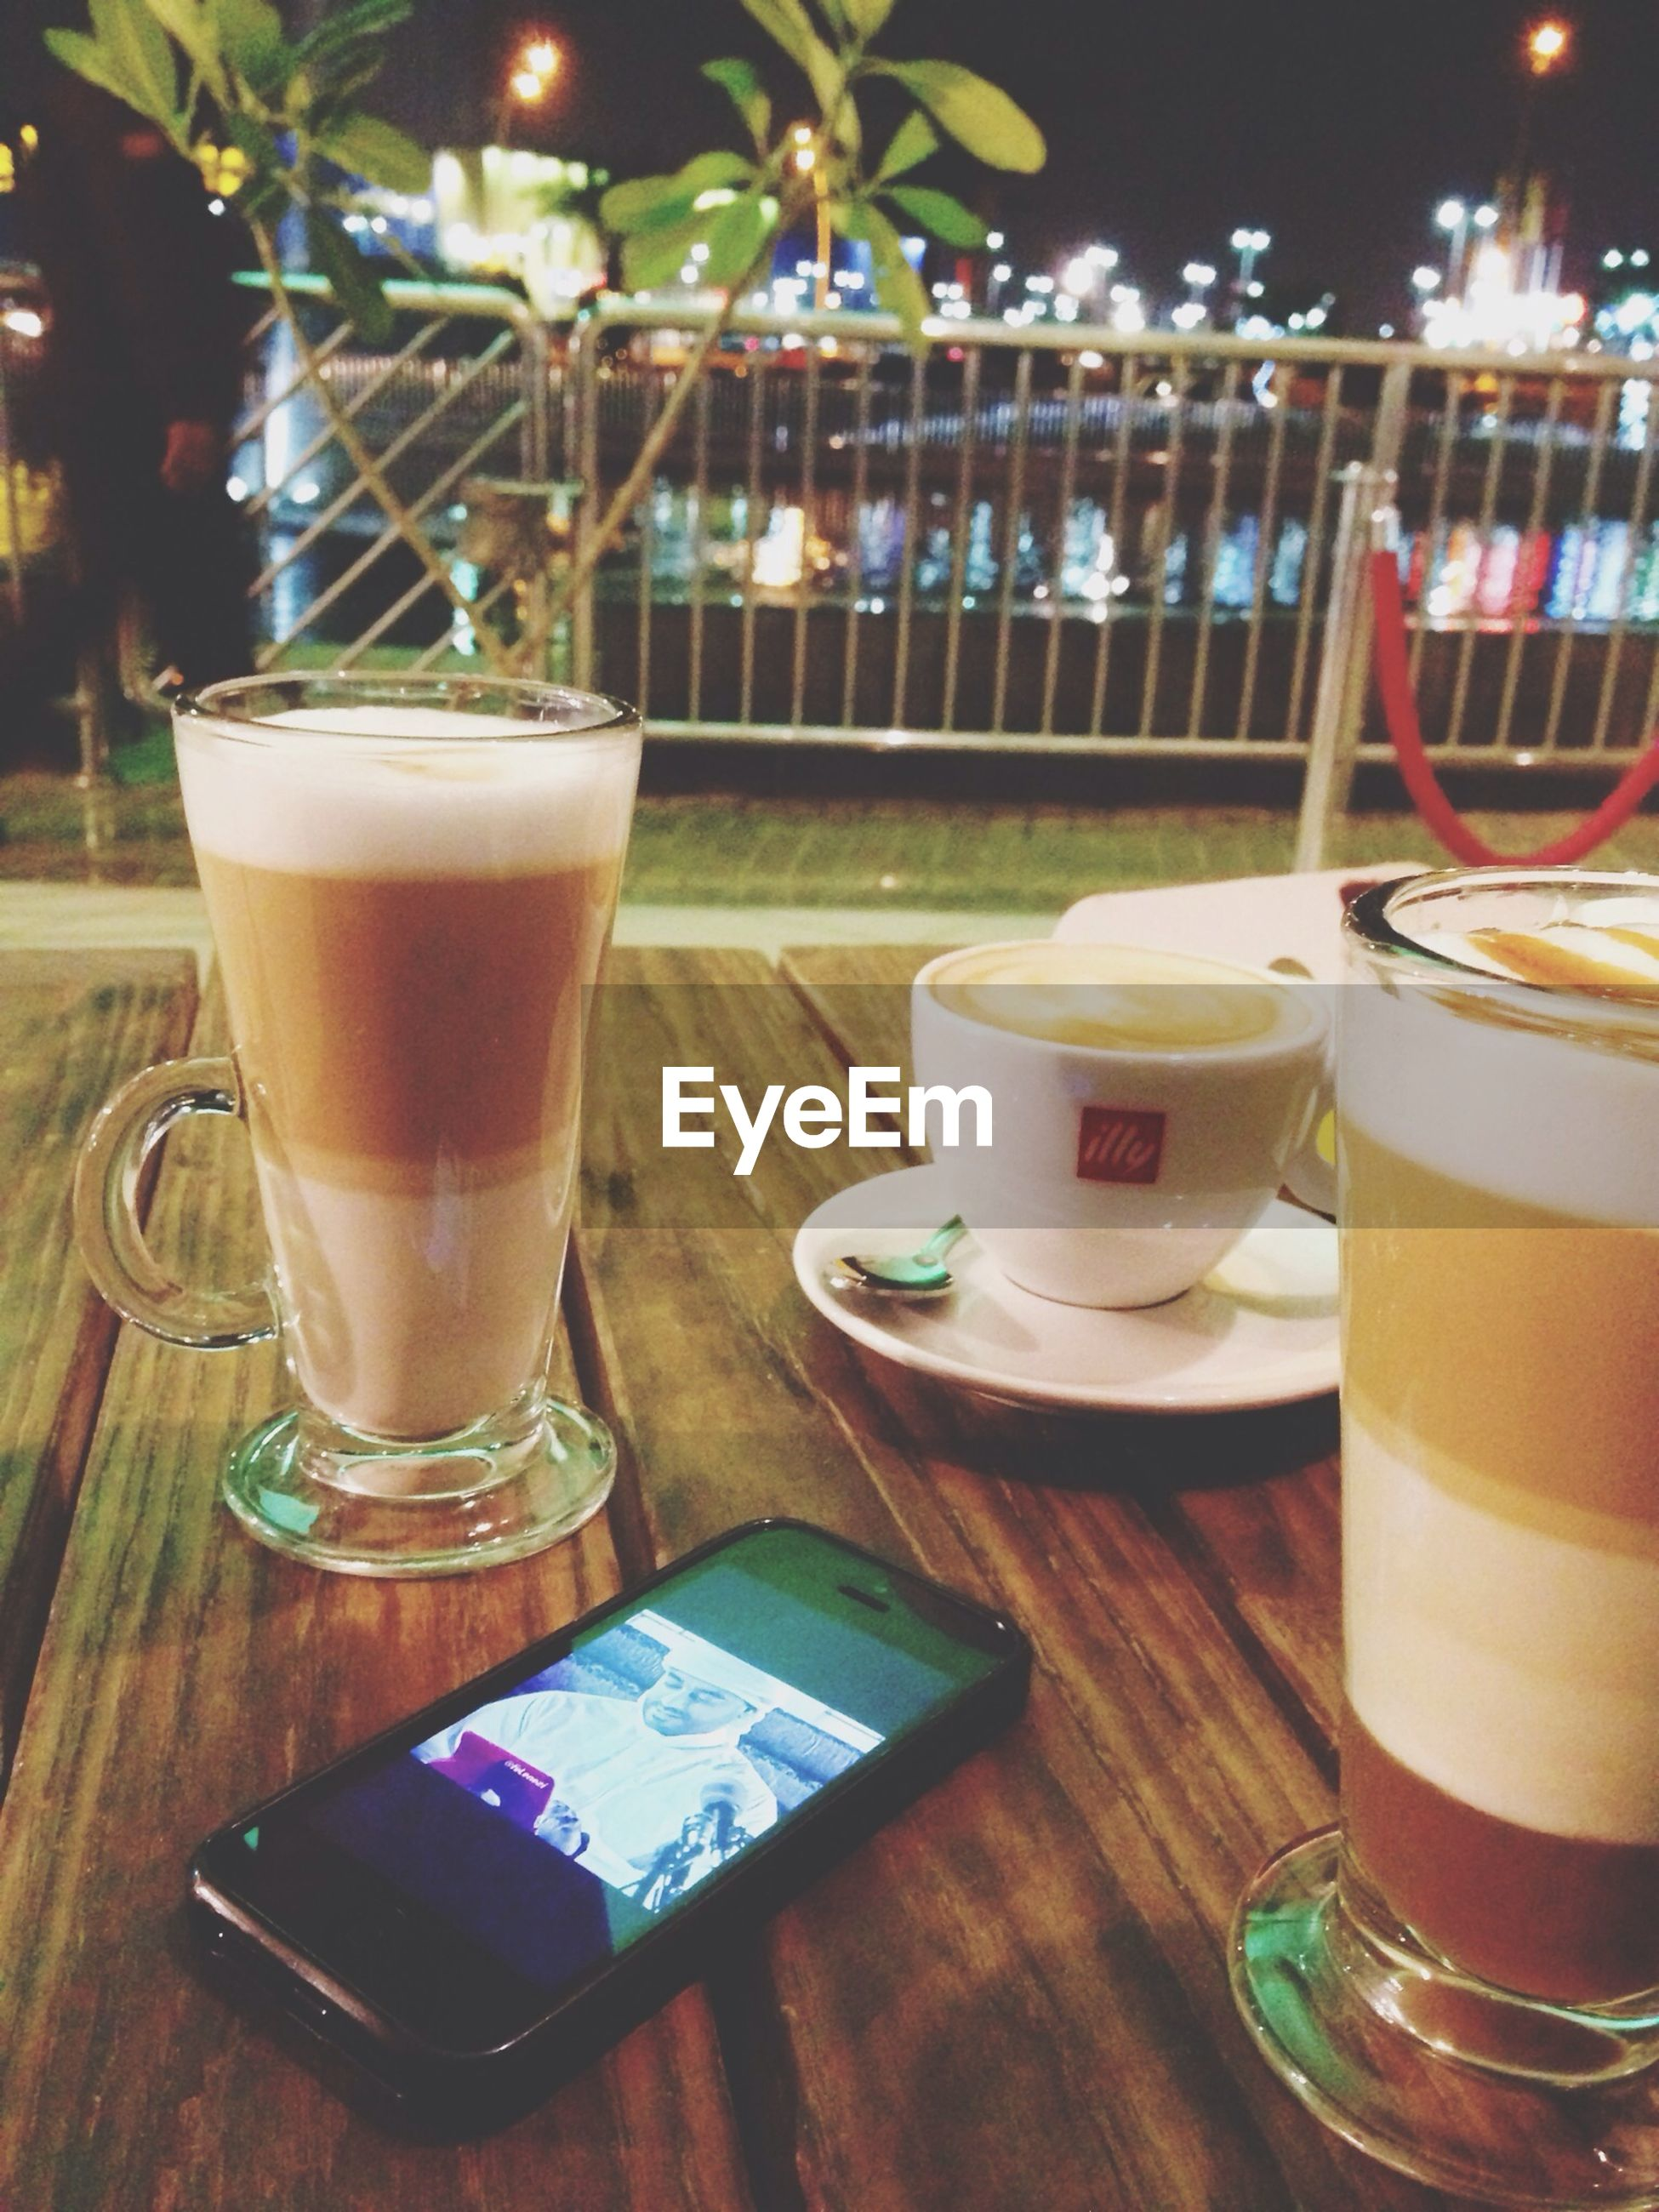 drink, food and drink, refreshment, table, freshness, drinking glass, indoors, still life, coffee - drink, close-up, frothy drink, saucer, restaurant, healthy eating, coffee cup, alcohol, juice, serving size, beverage, focus on foreground